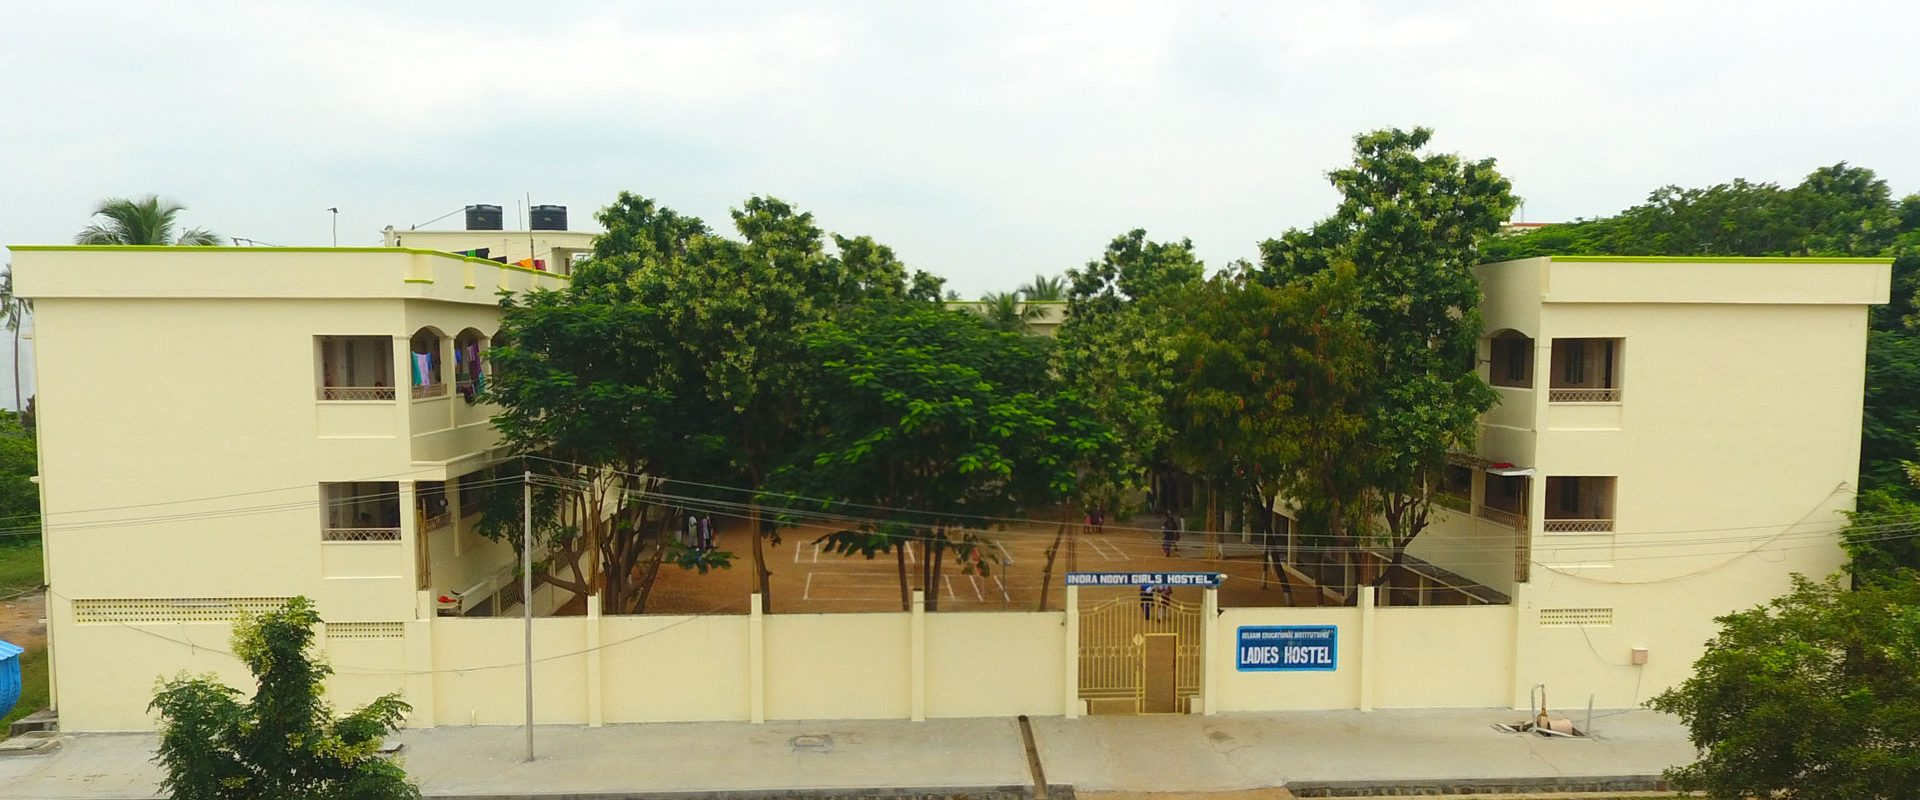 Girls Hostel - Exterior